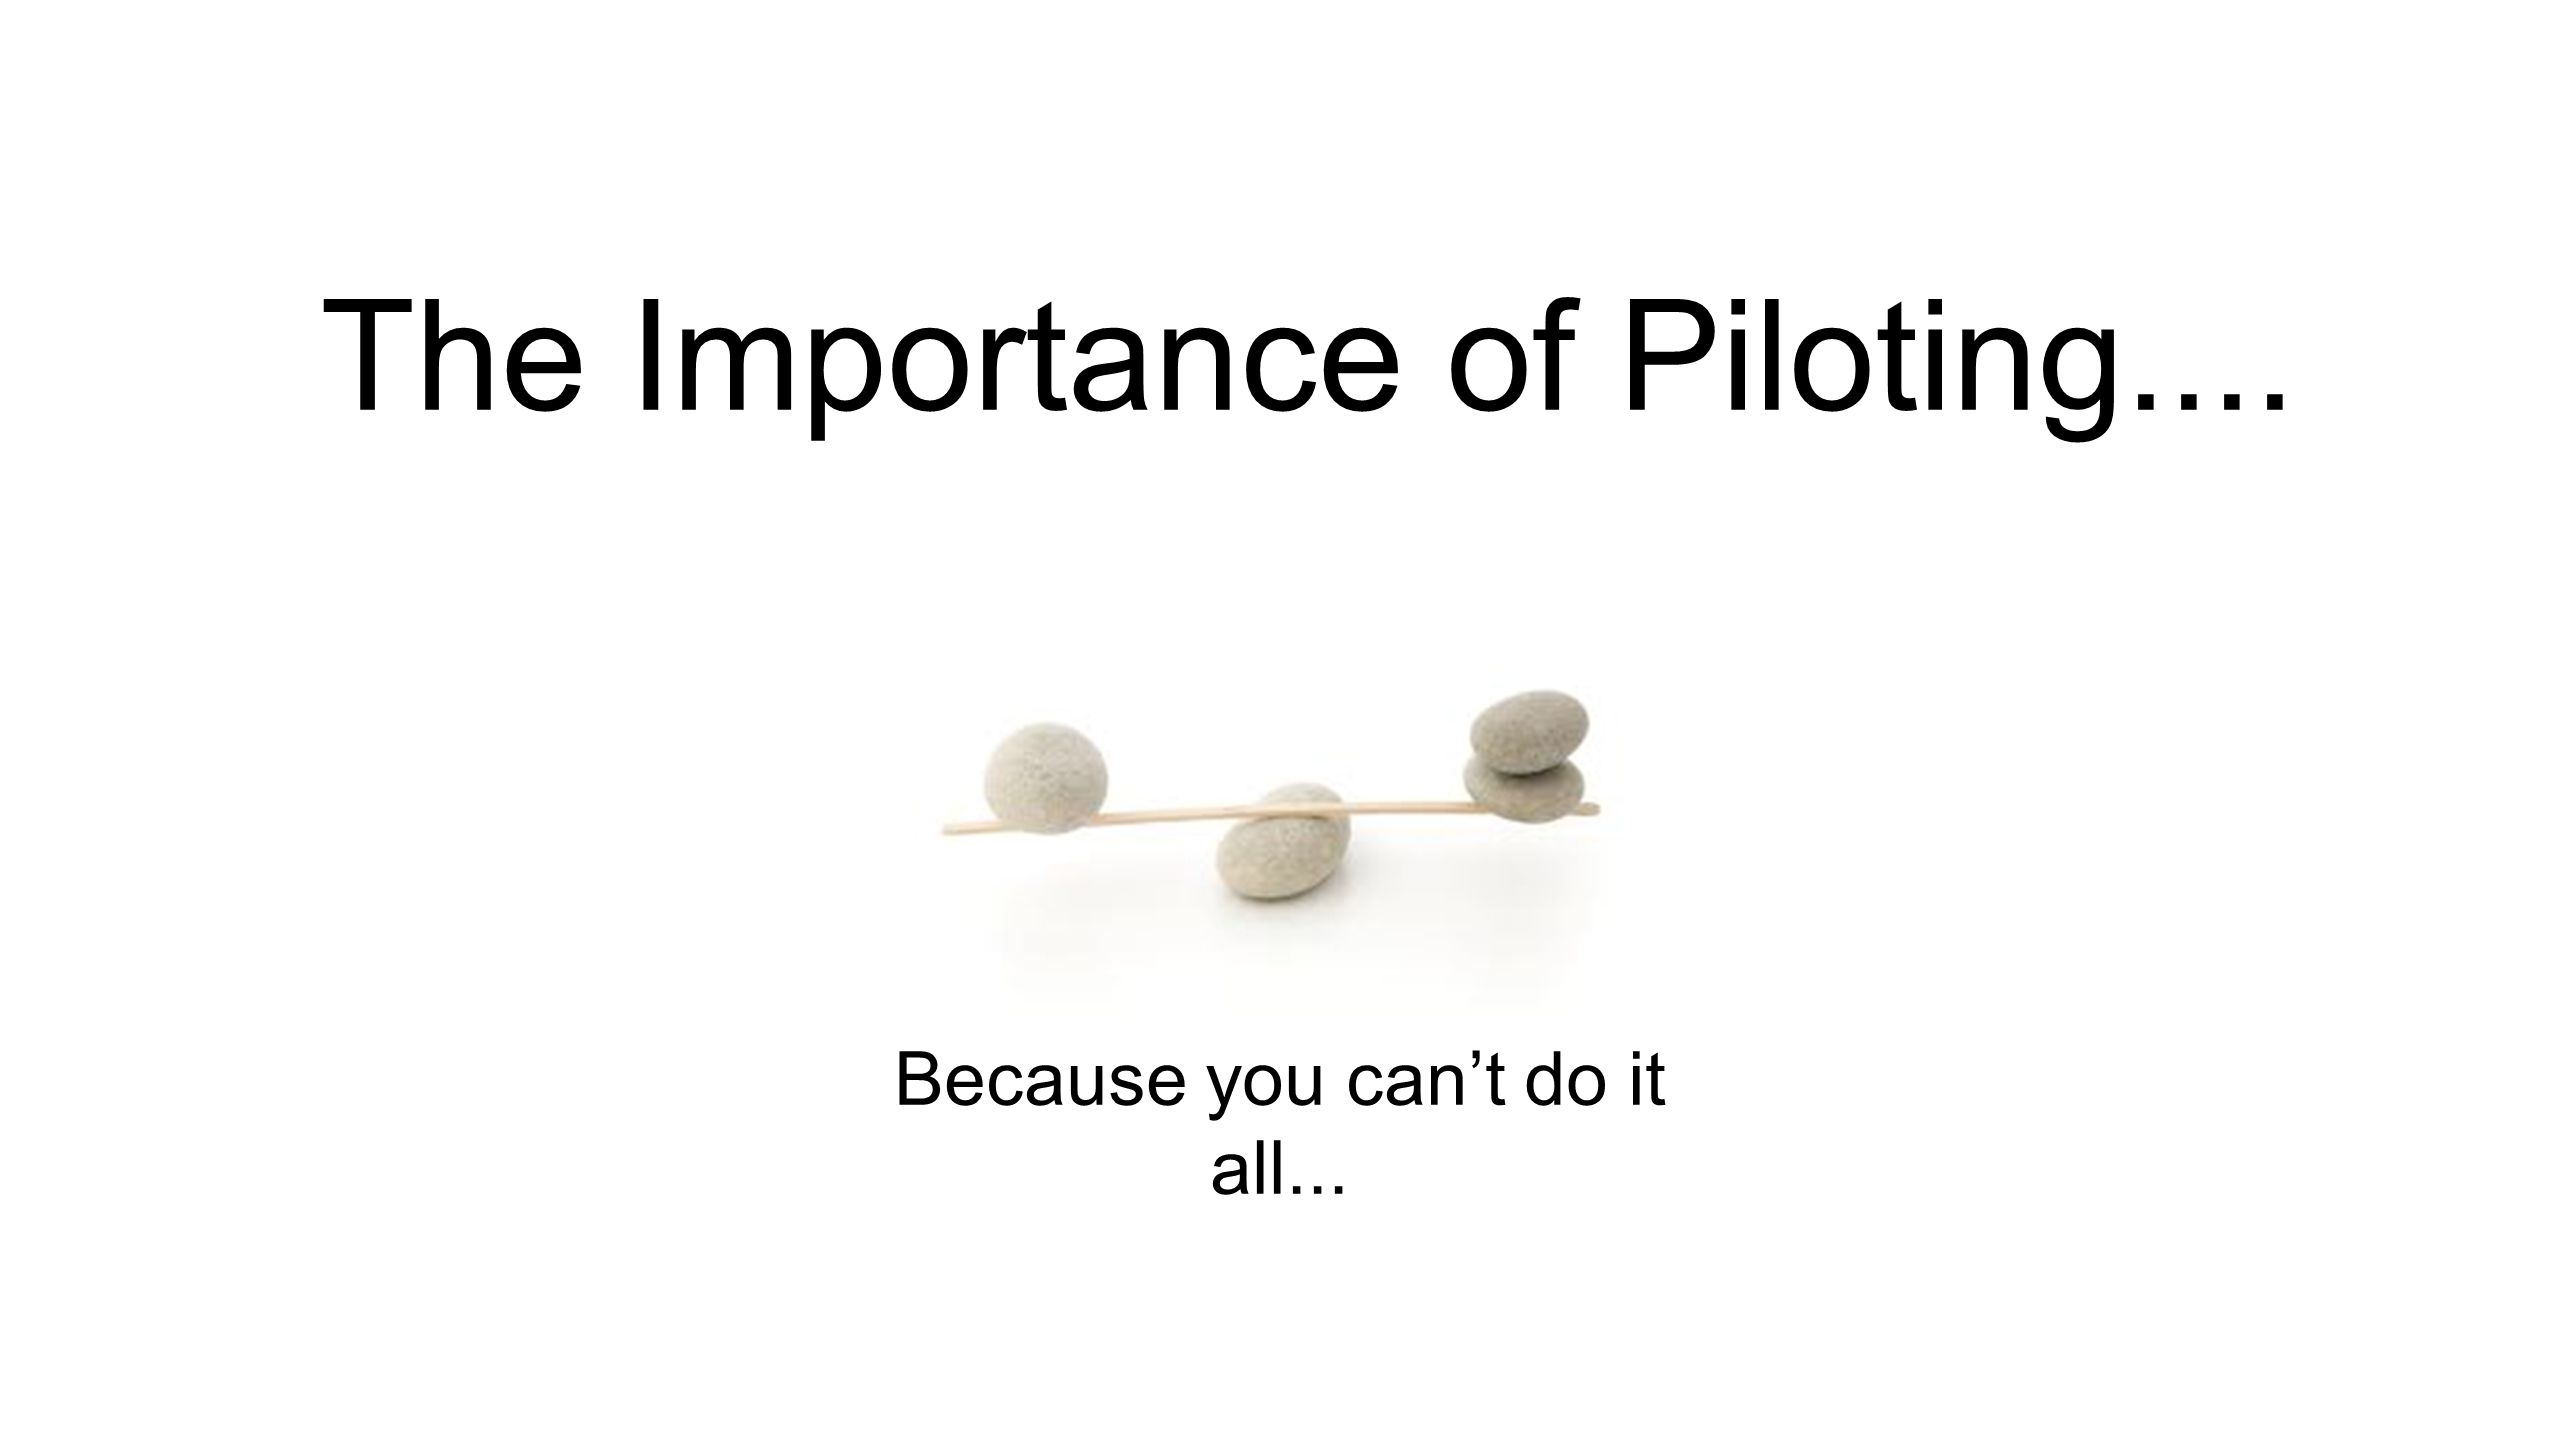 The Importance of Piloting.... Because you cant do it all...